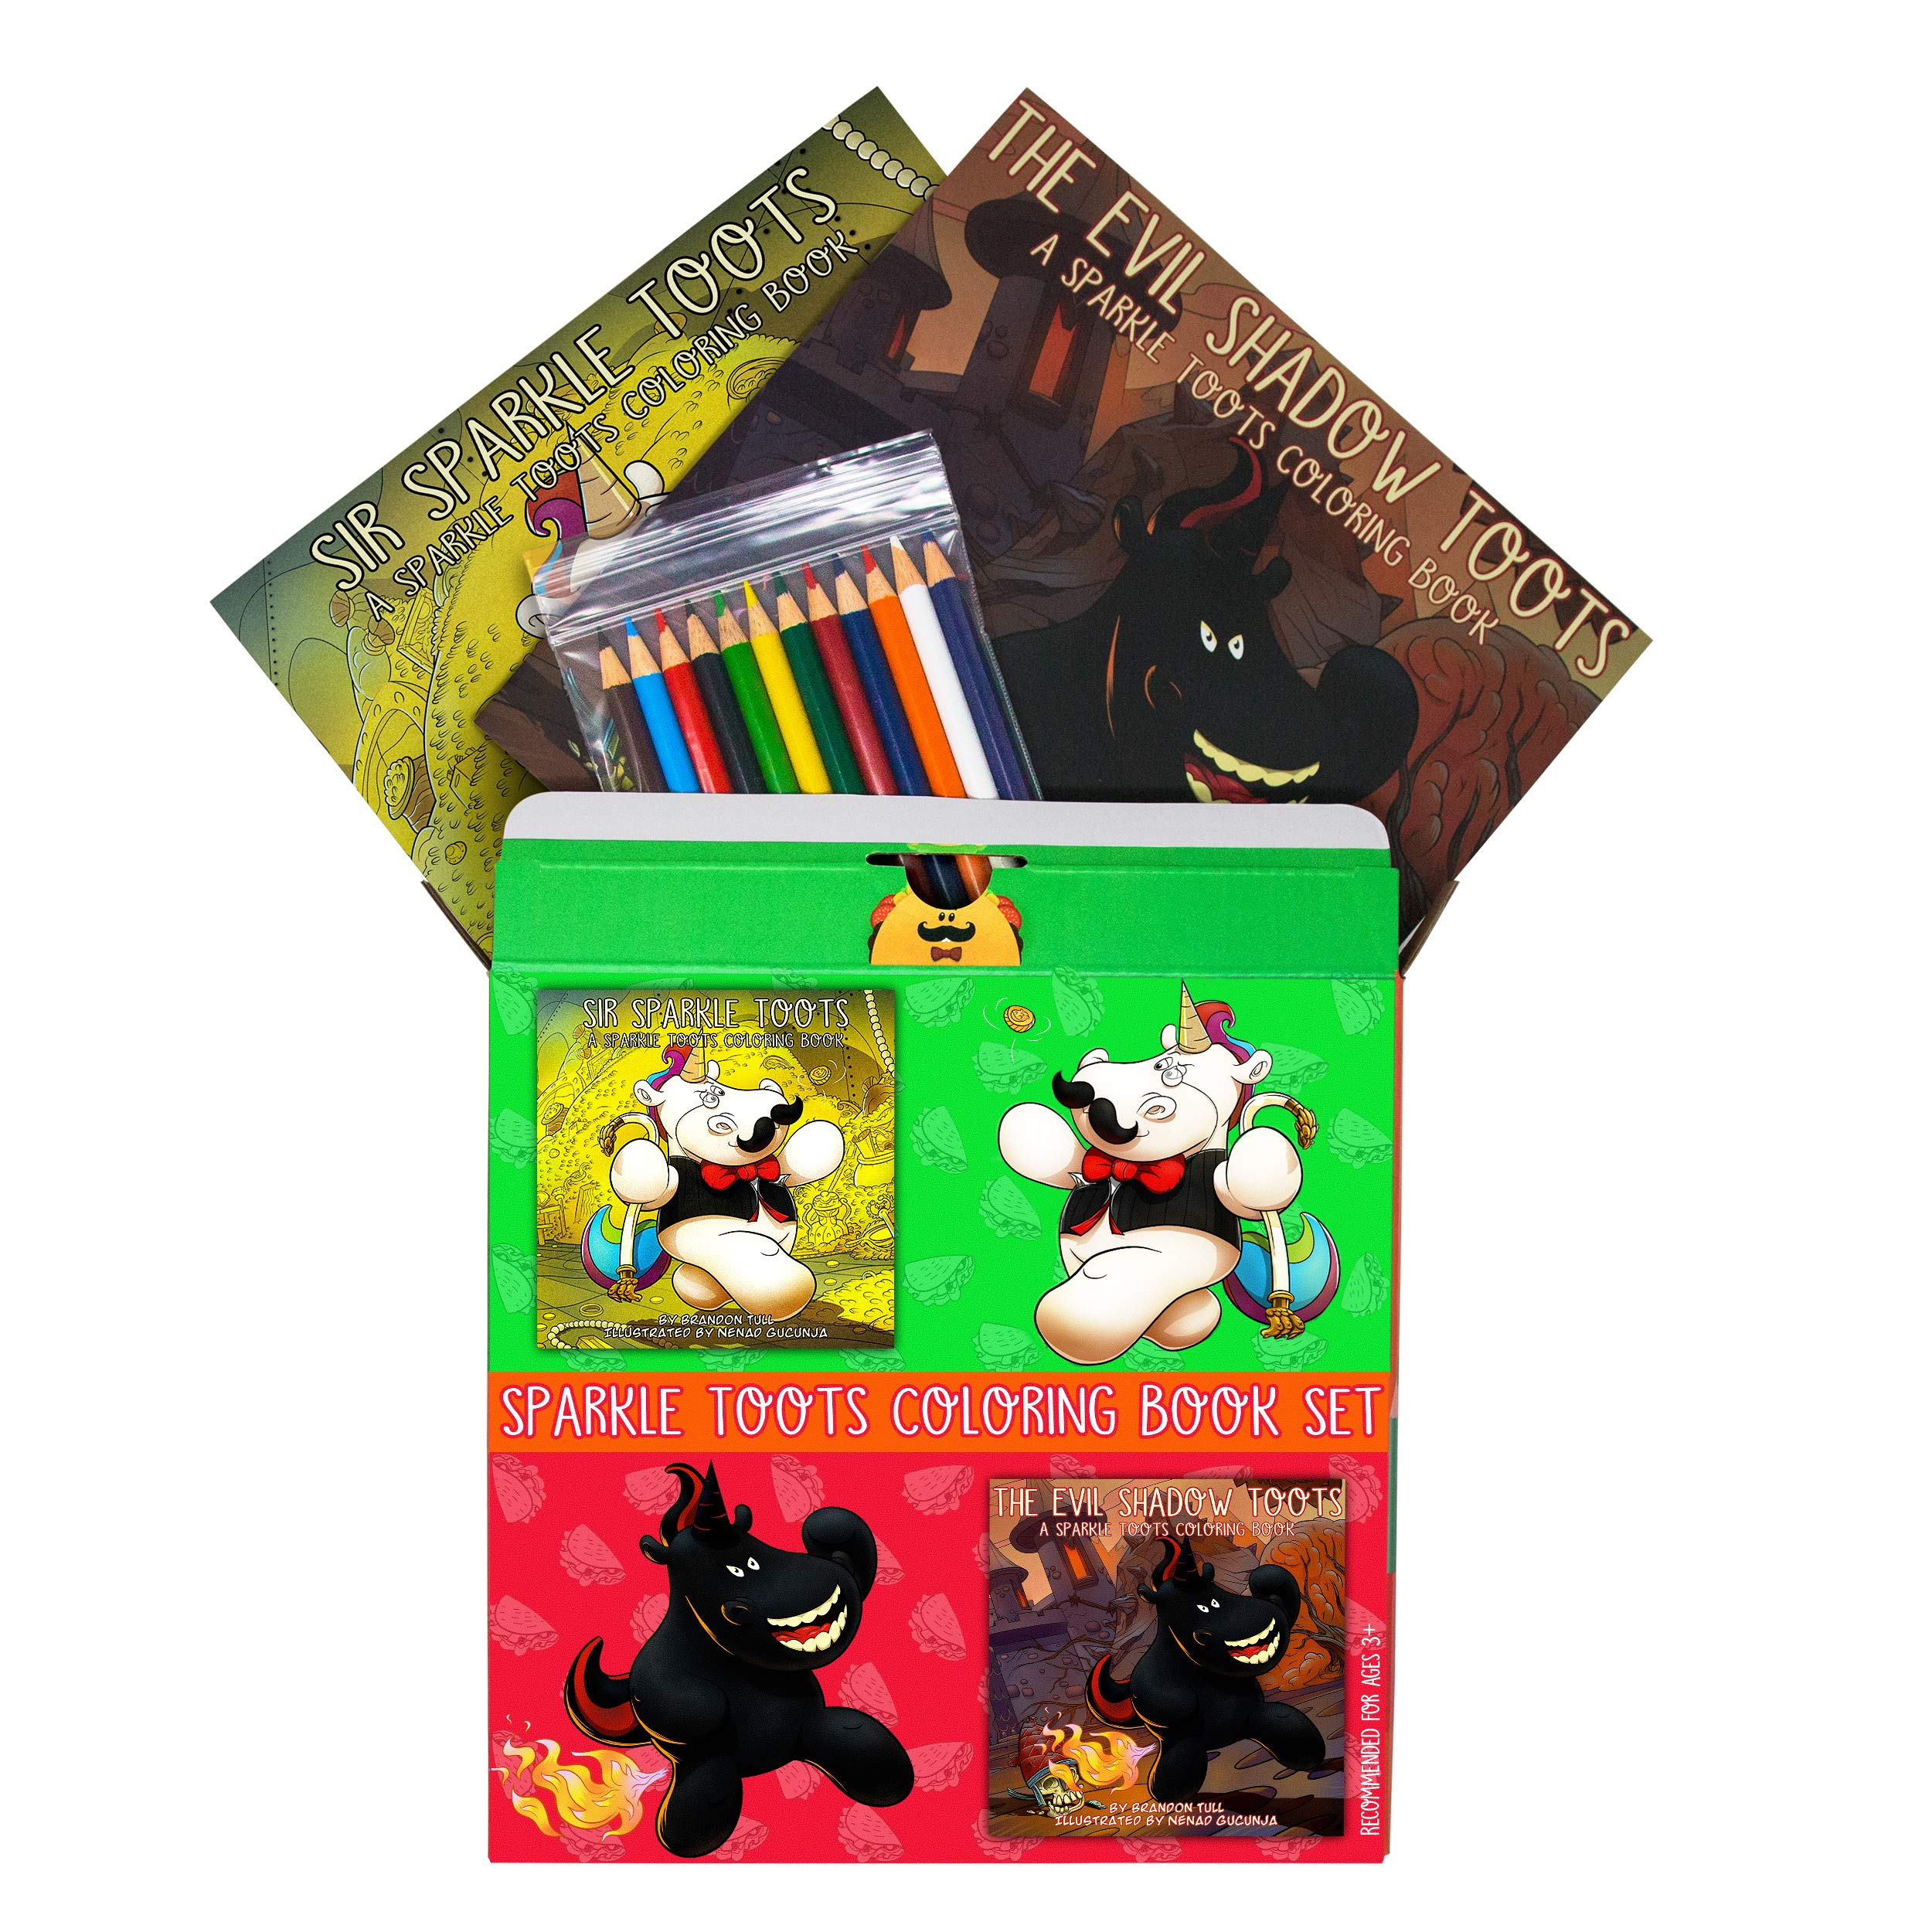 Sparkle Toots Coloring Book Set - Includes Two Coloring Books & 12 Colored Pencils - Unique Gag Gift, Funny for All Ages